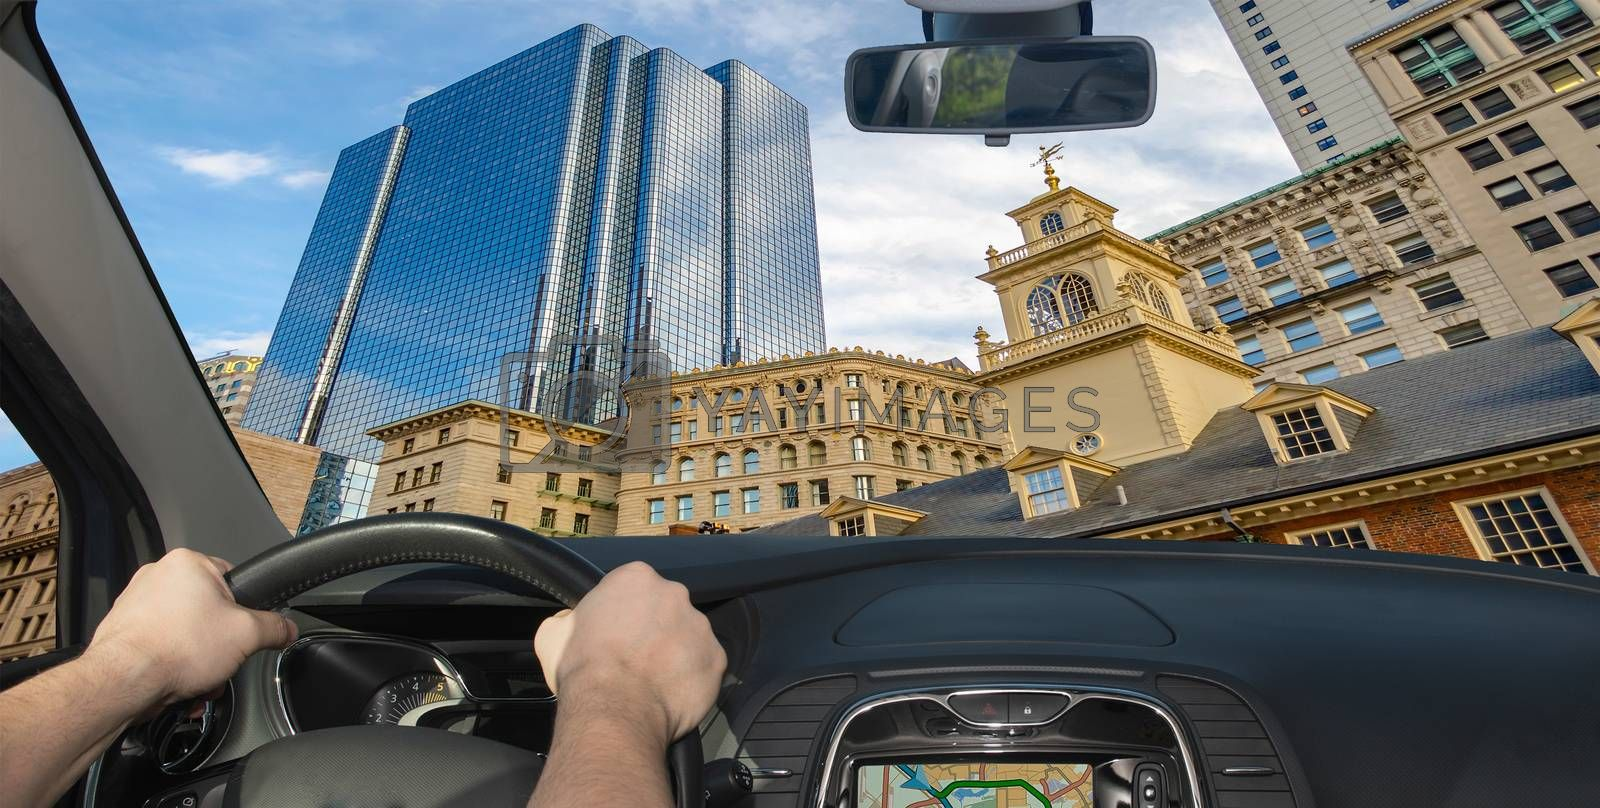 Driving a car in the city centre of Boston, Massachusetts, USA